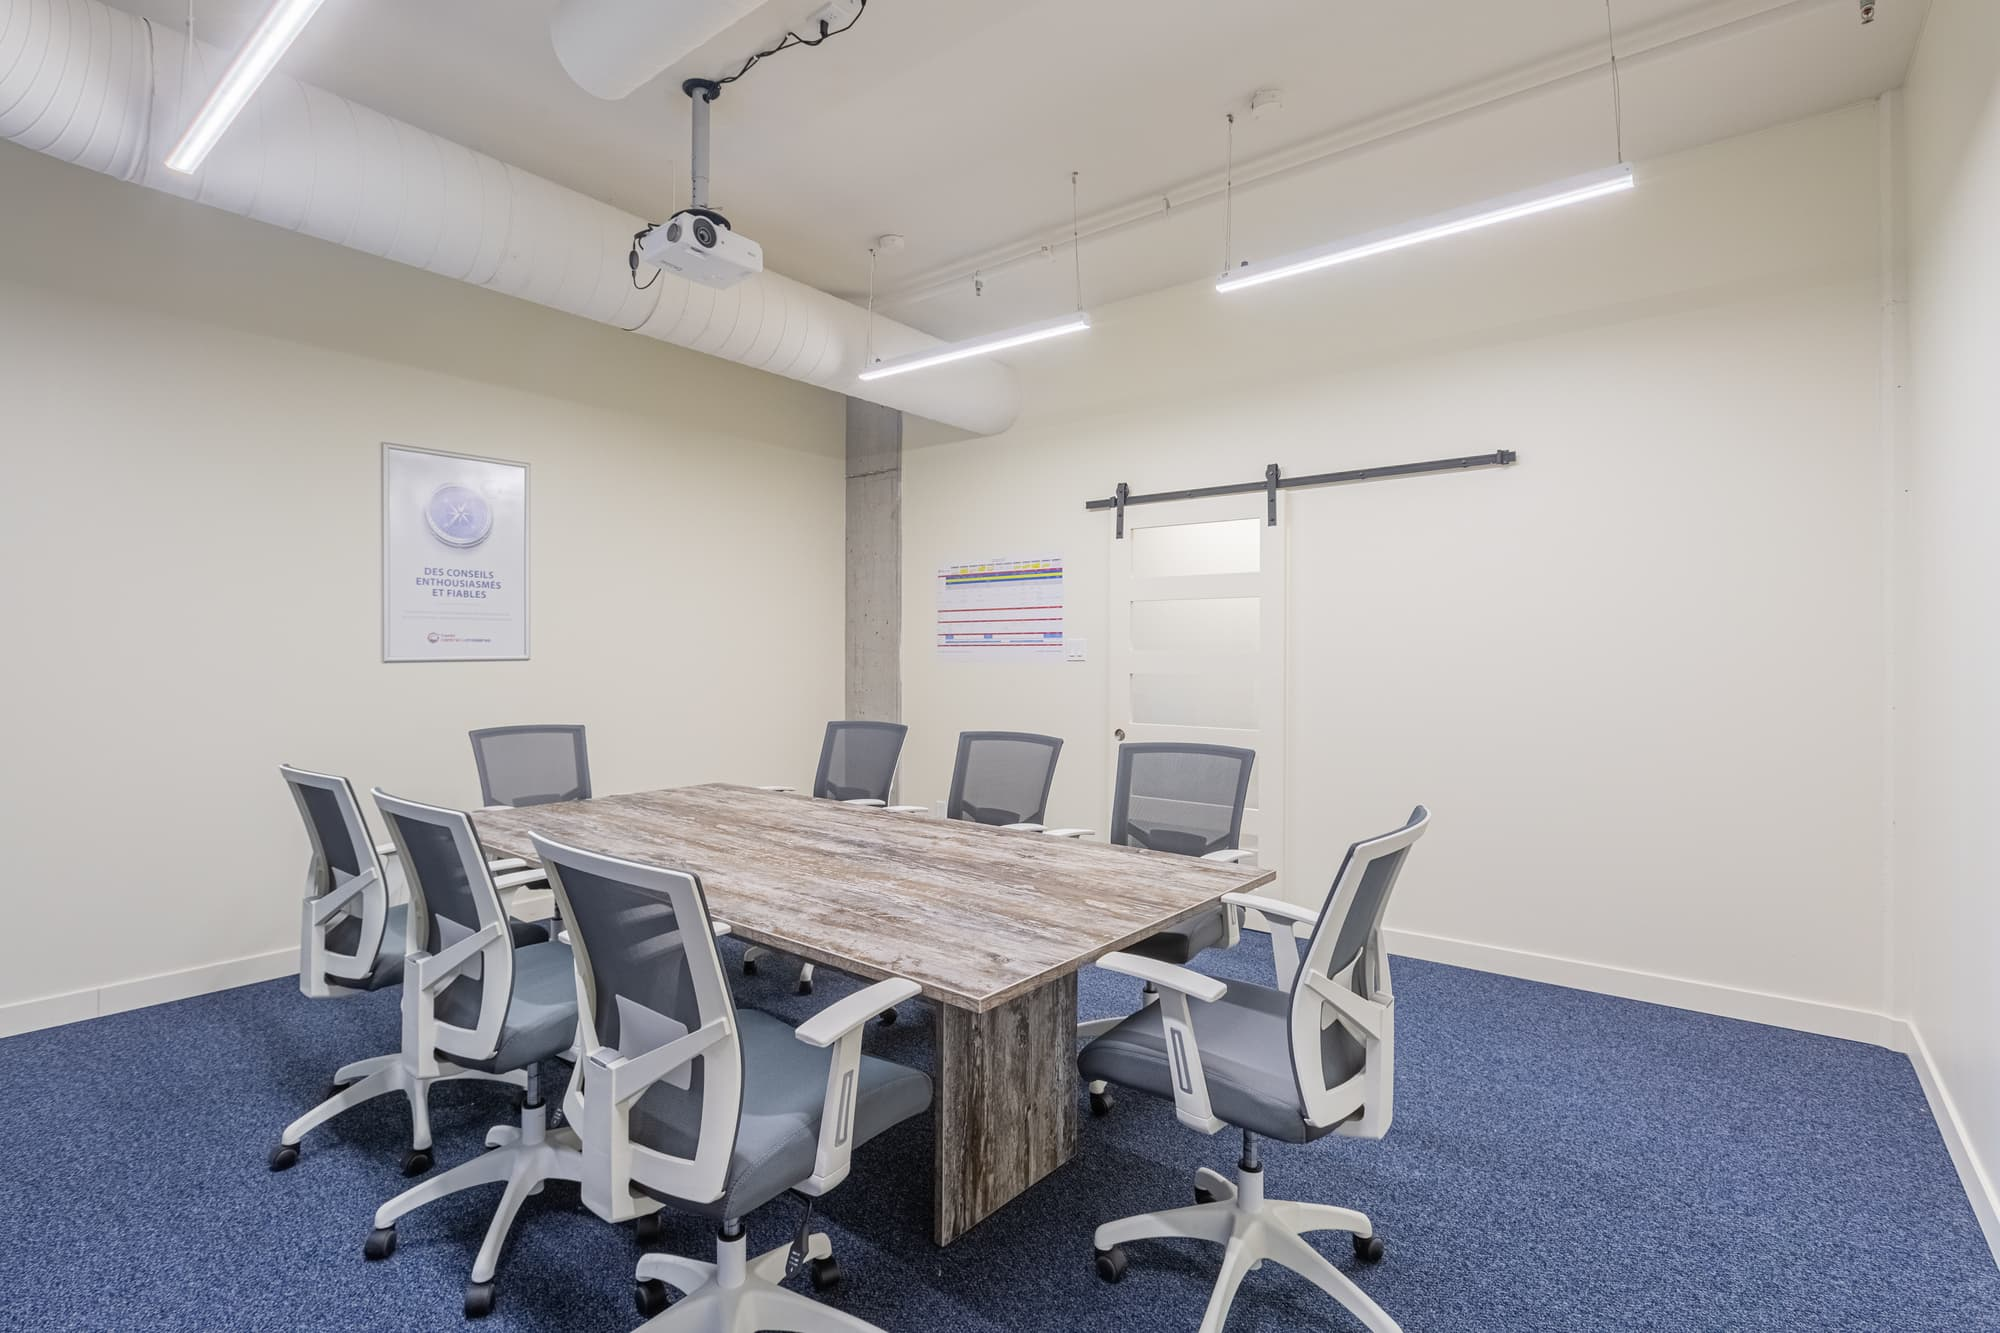 meeting room with blue carpet, wooden table and 8 chairs